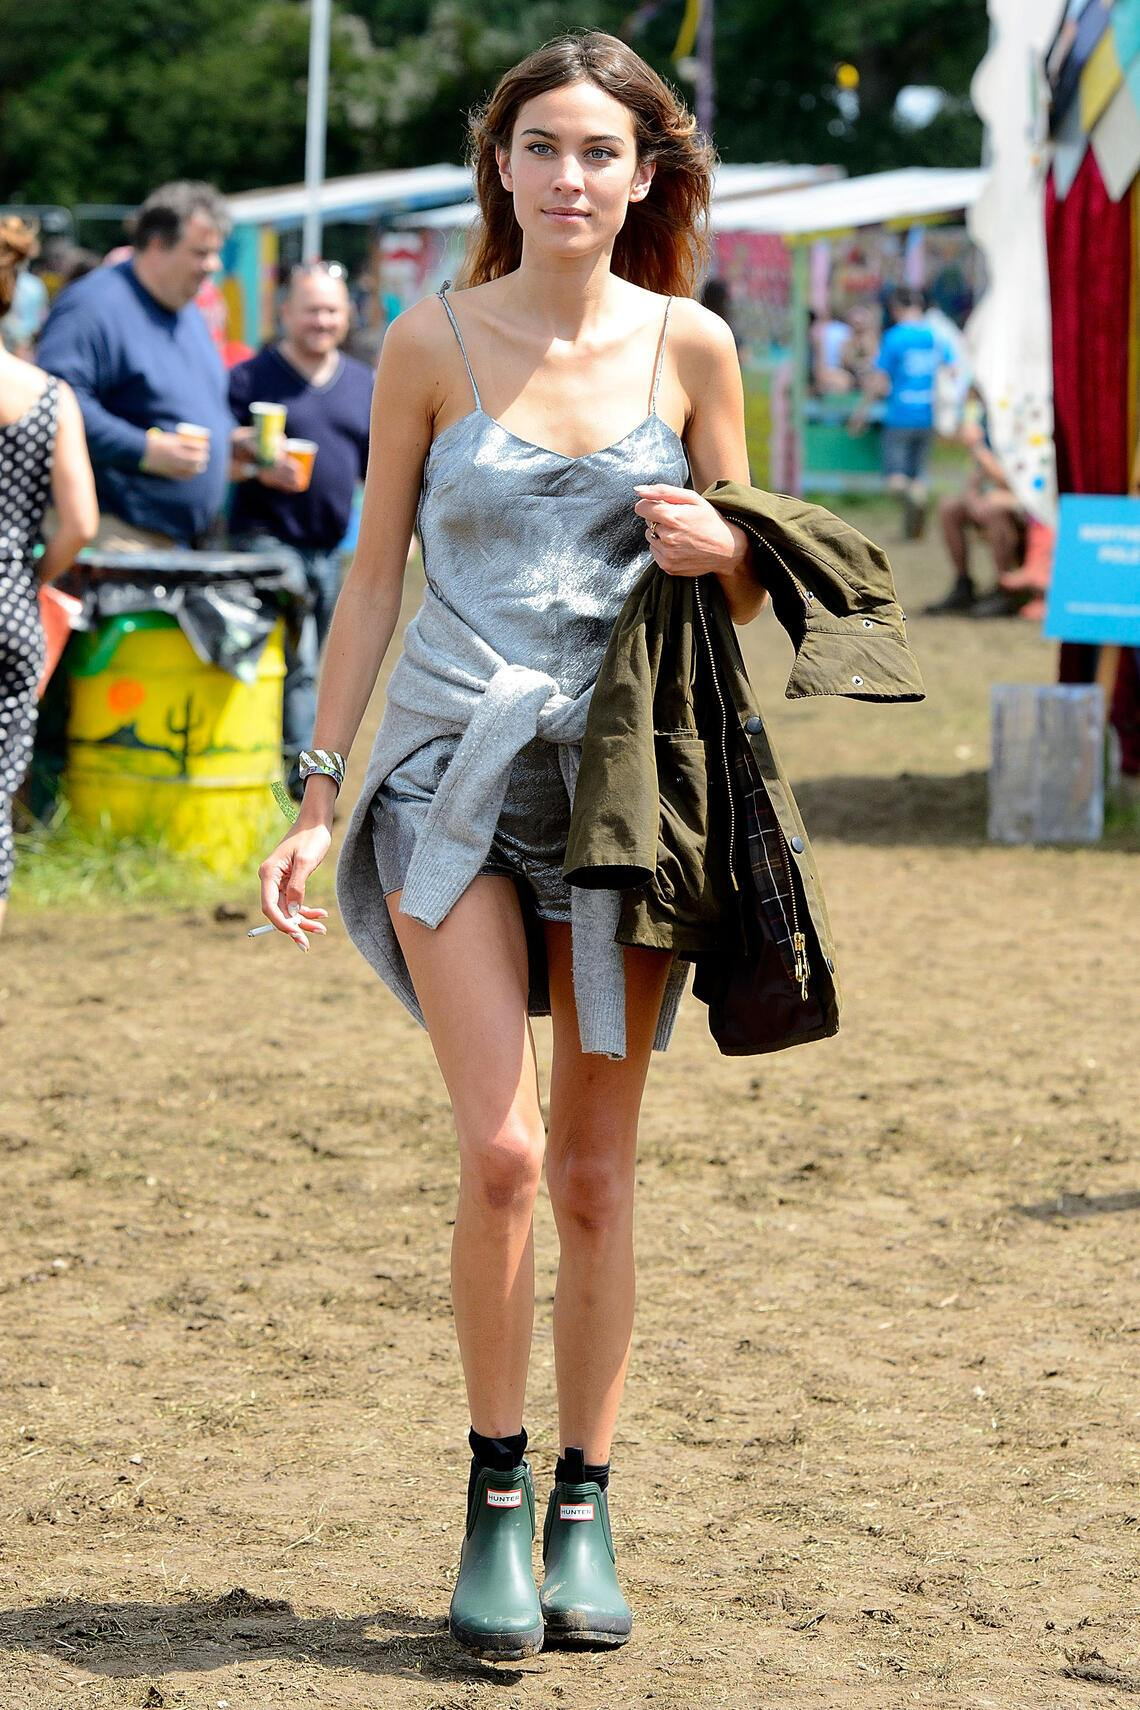 GLASTONBURY, ENGLAND - JUNE 29:  Alexa Chung attends the Glastonbury Festival at Worthy Farm on June 29, 2014 in Glastonbury, England.  (Photo by Danny Martindale/GC Images)